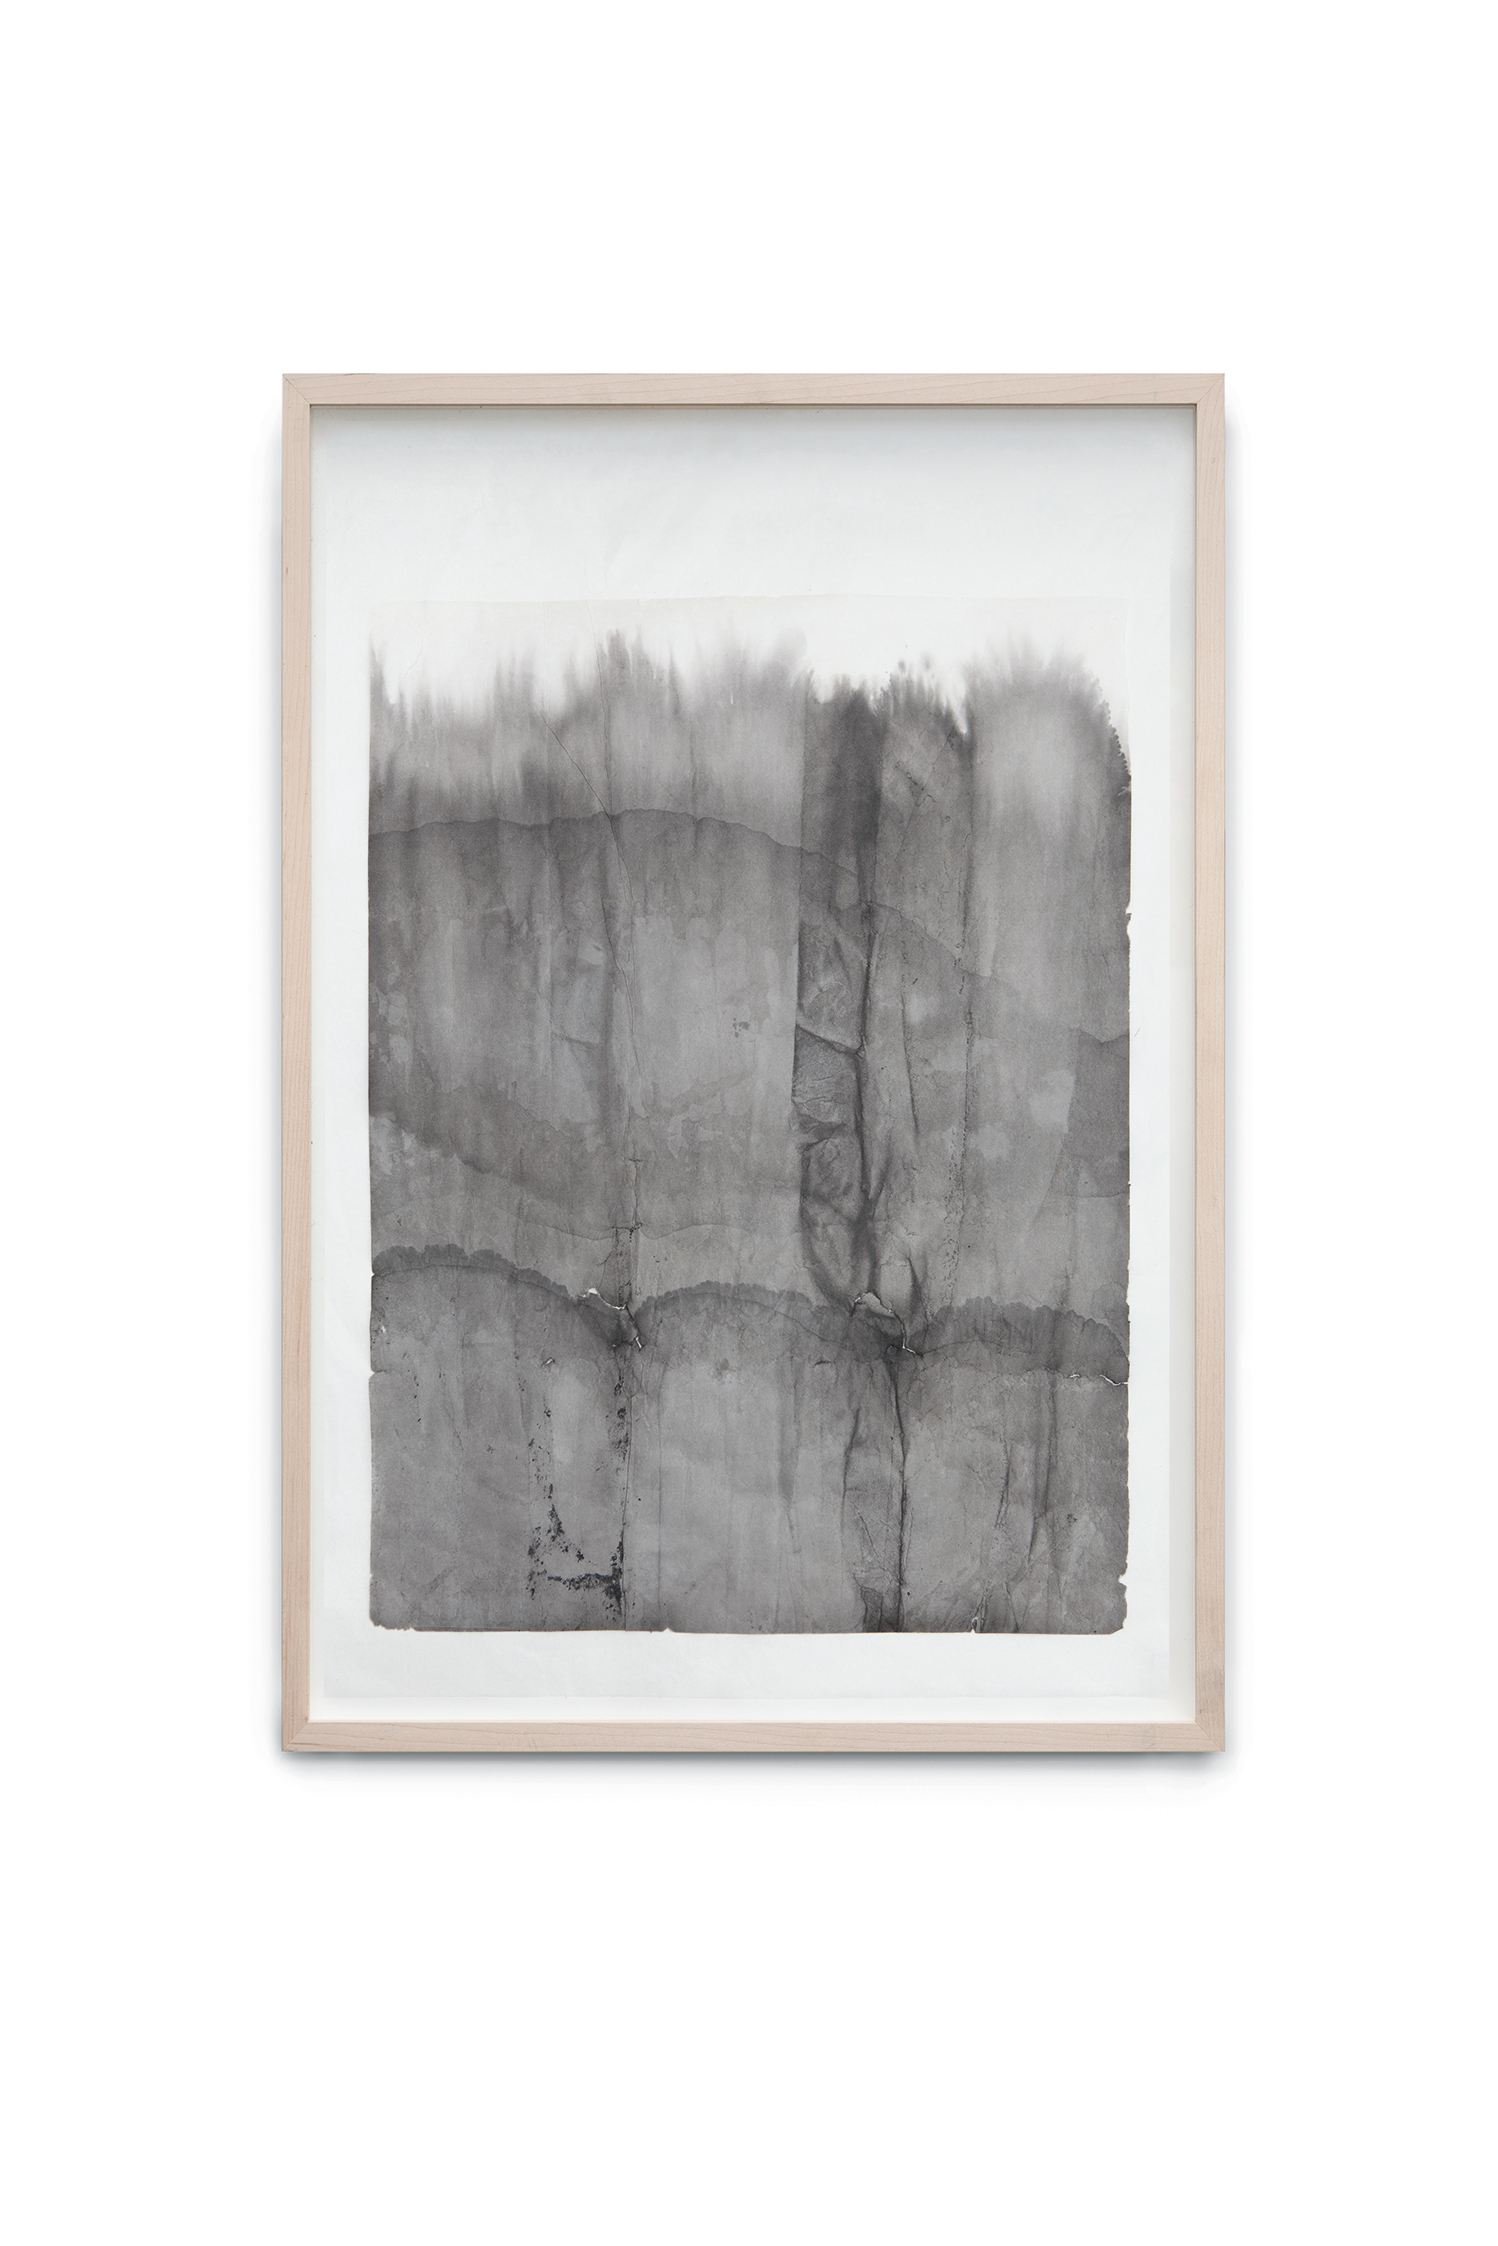 Immersion II, 2014, ink on rice paper coated on japan paper, 62x46 cm